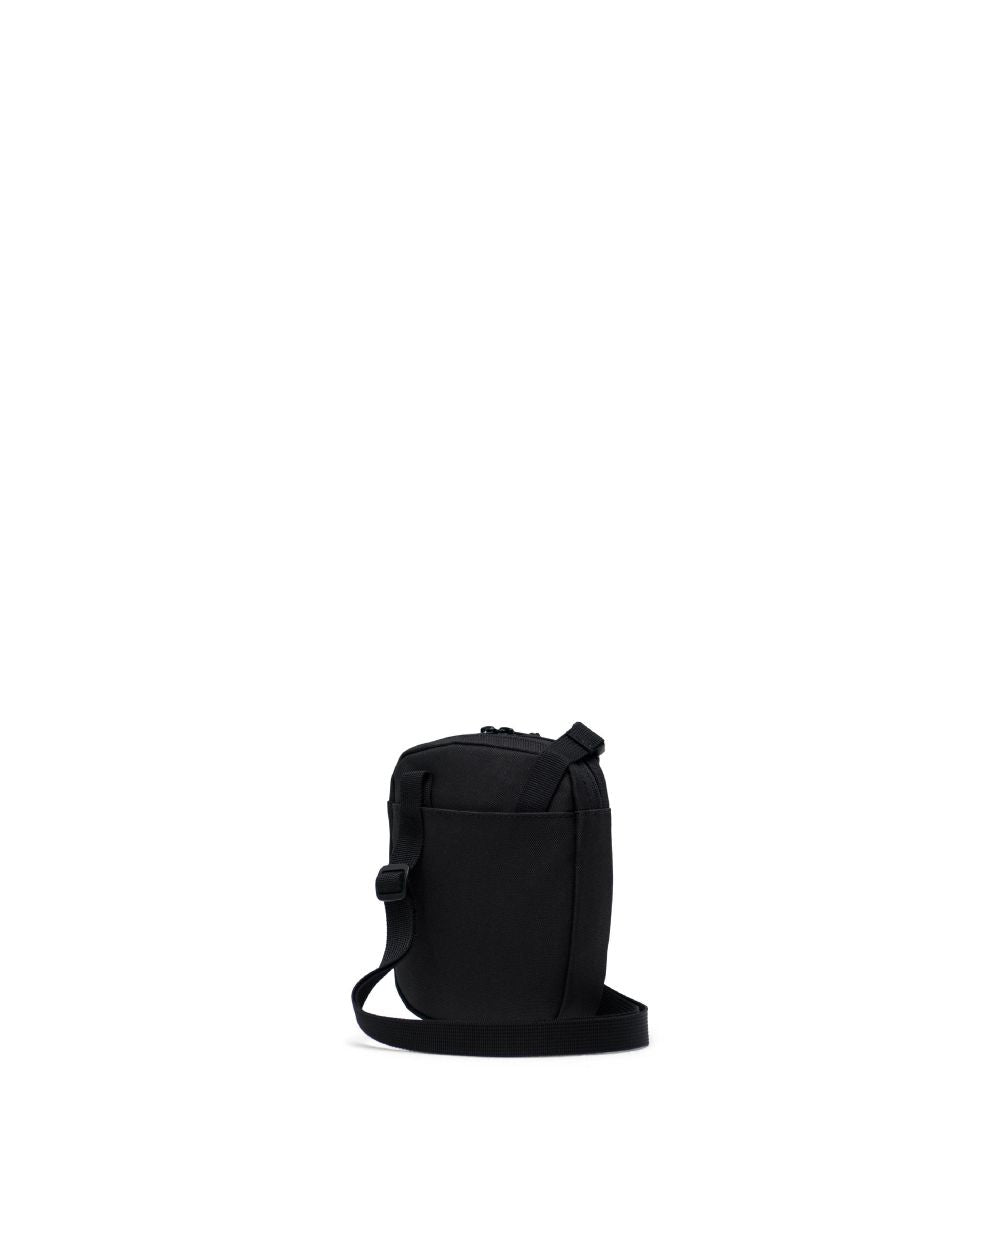 CRUZ CROSSBODY - BLACK